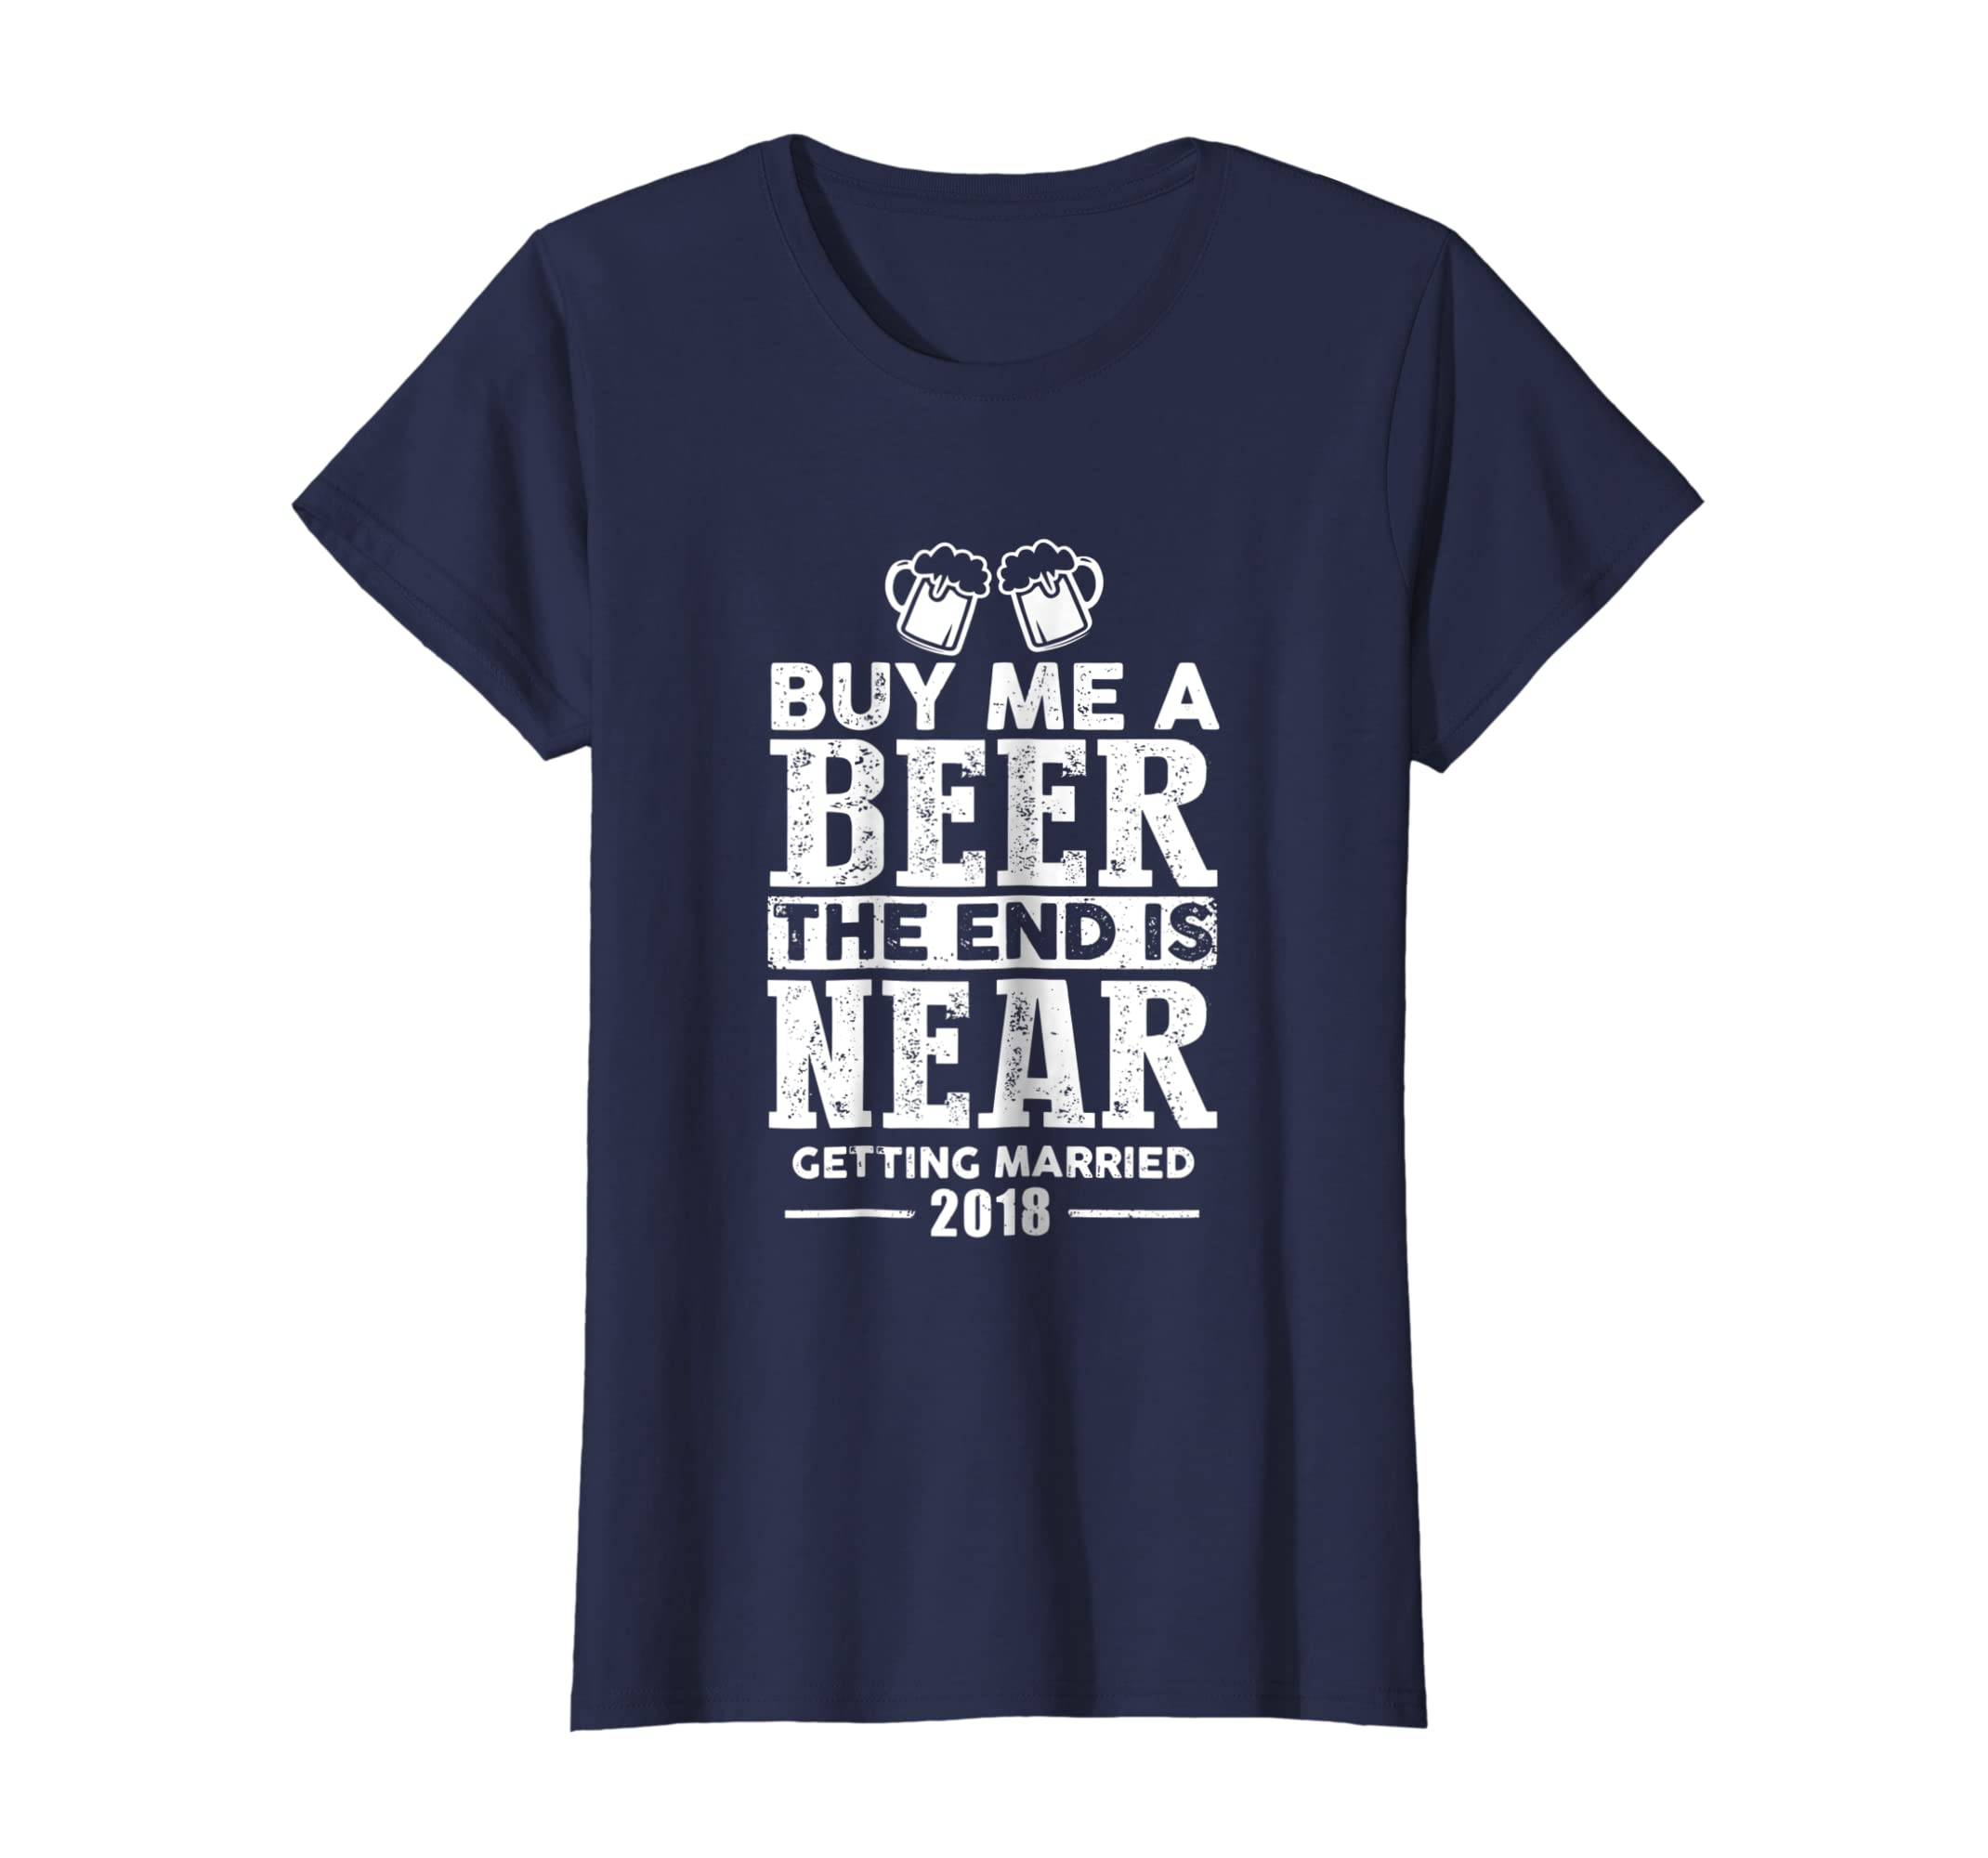 d6cfbd49313 Amazon.com  Buy Me A Beer The End Is Near Getting Married 2018 T-Shirt   Clothing